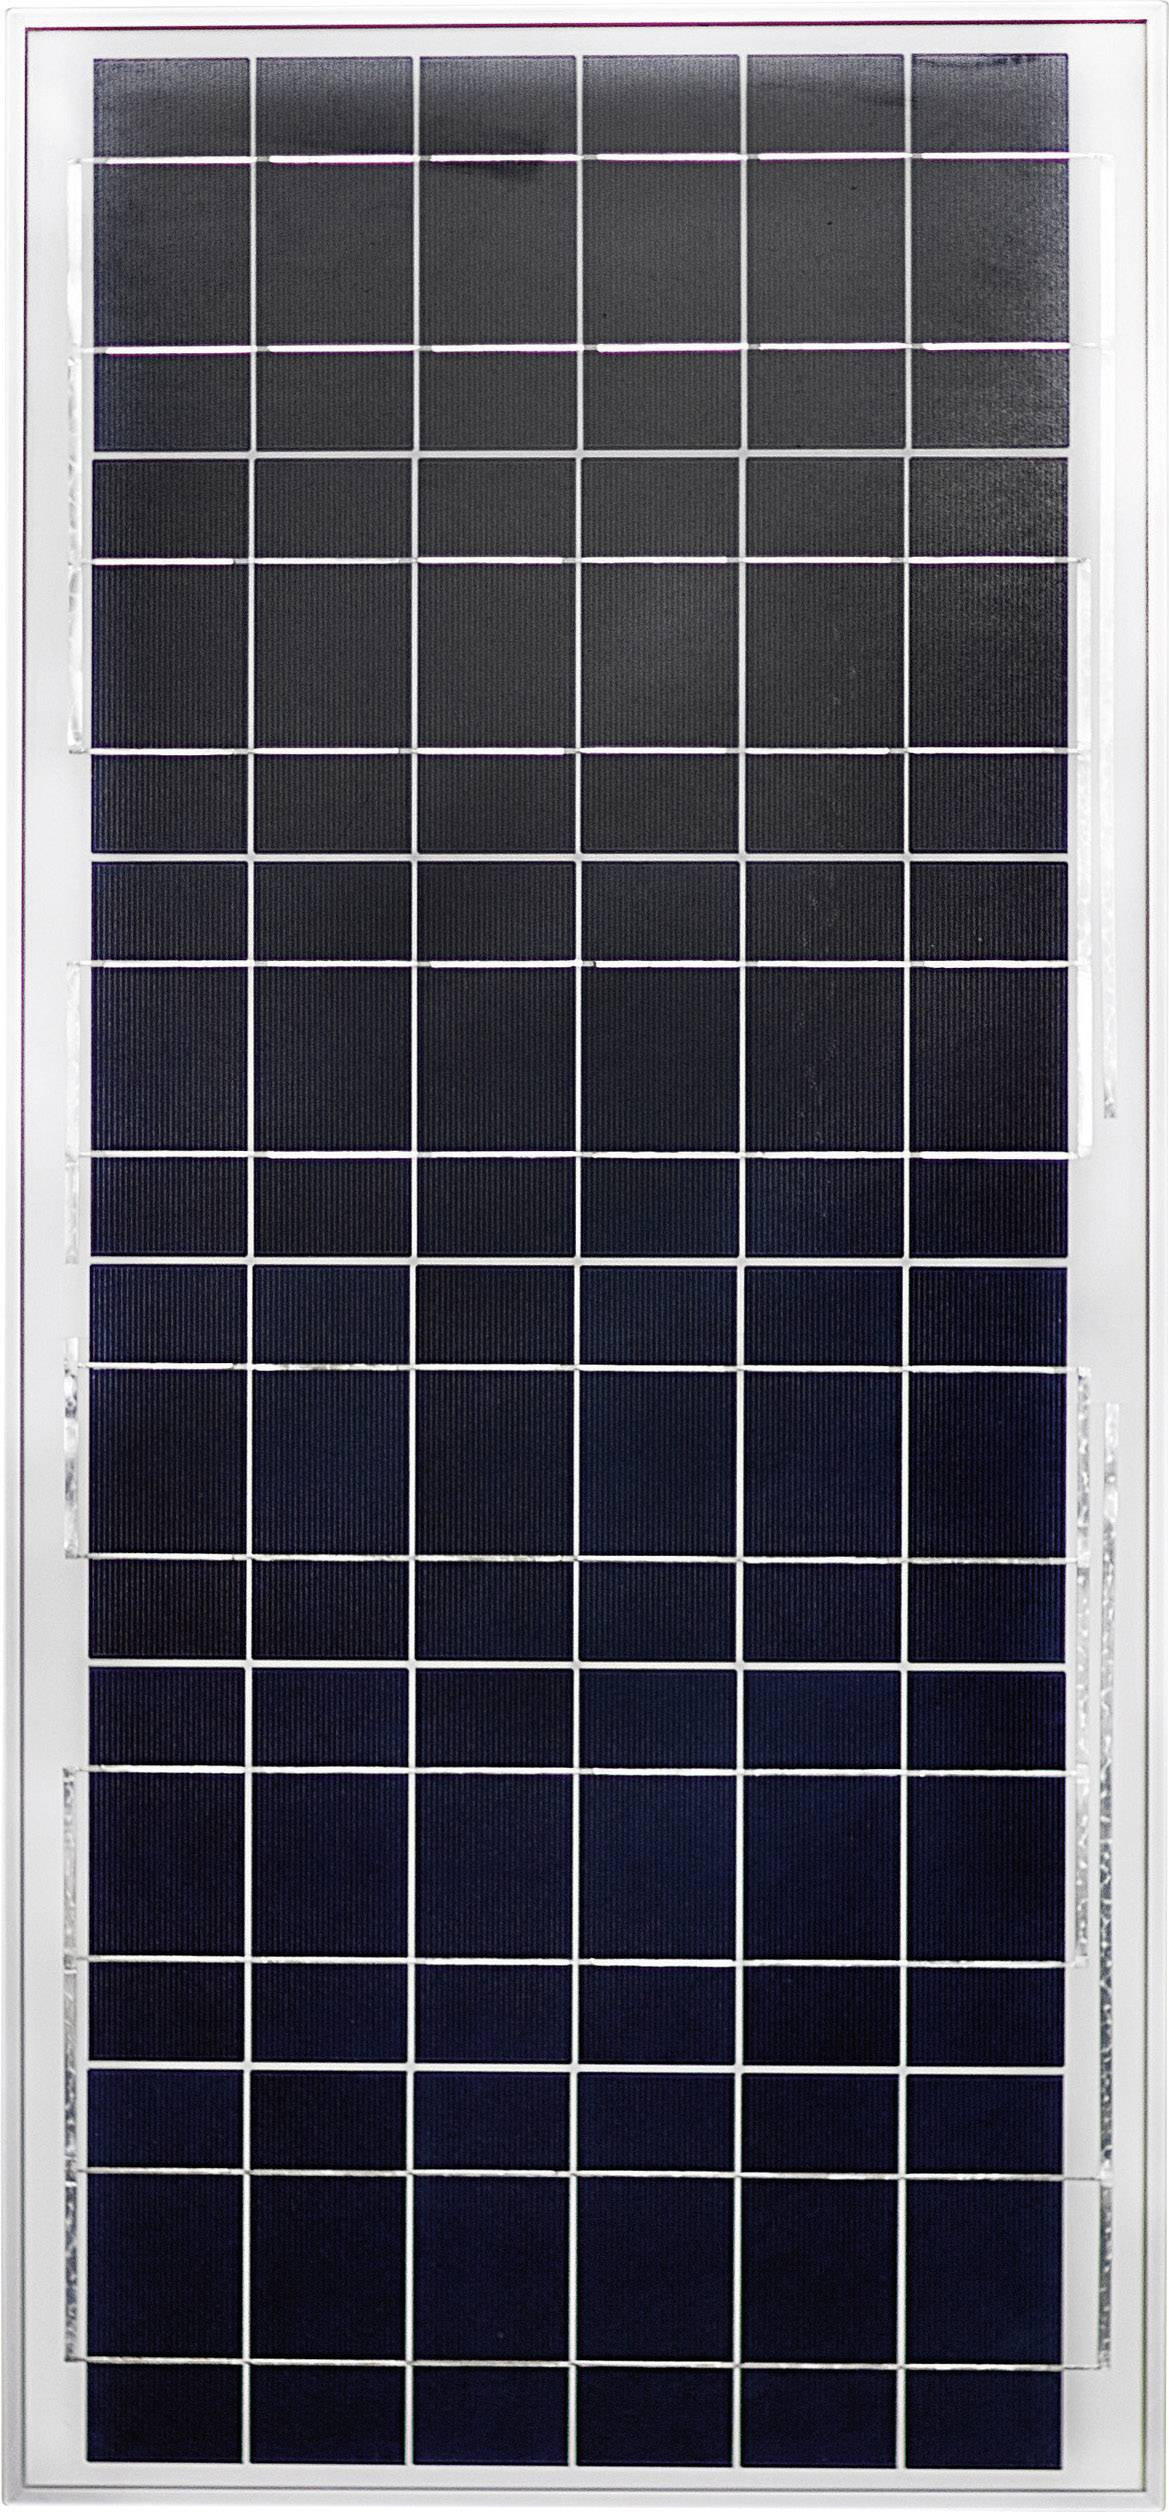 Monokryštalický solárny panel Sunset AS 60, 3350 mA, 60 Wp, 12 V